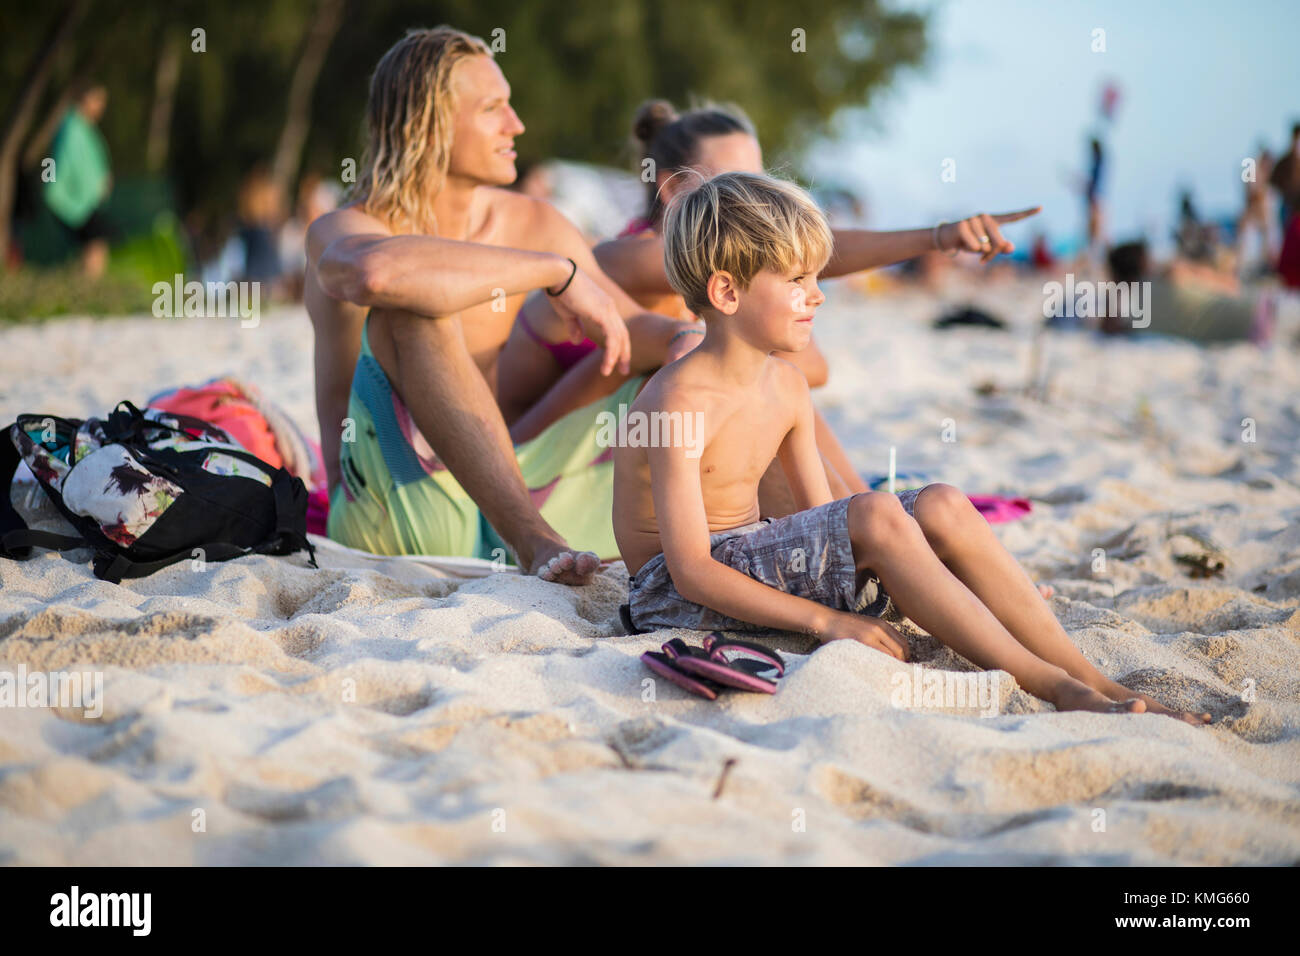 Family relaxing on sand at beach - Stock Image